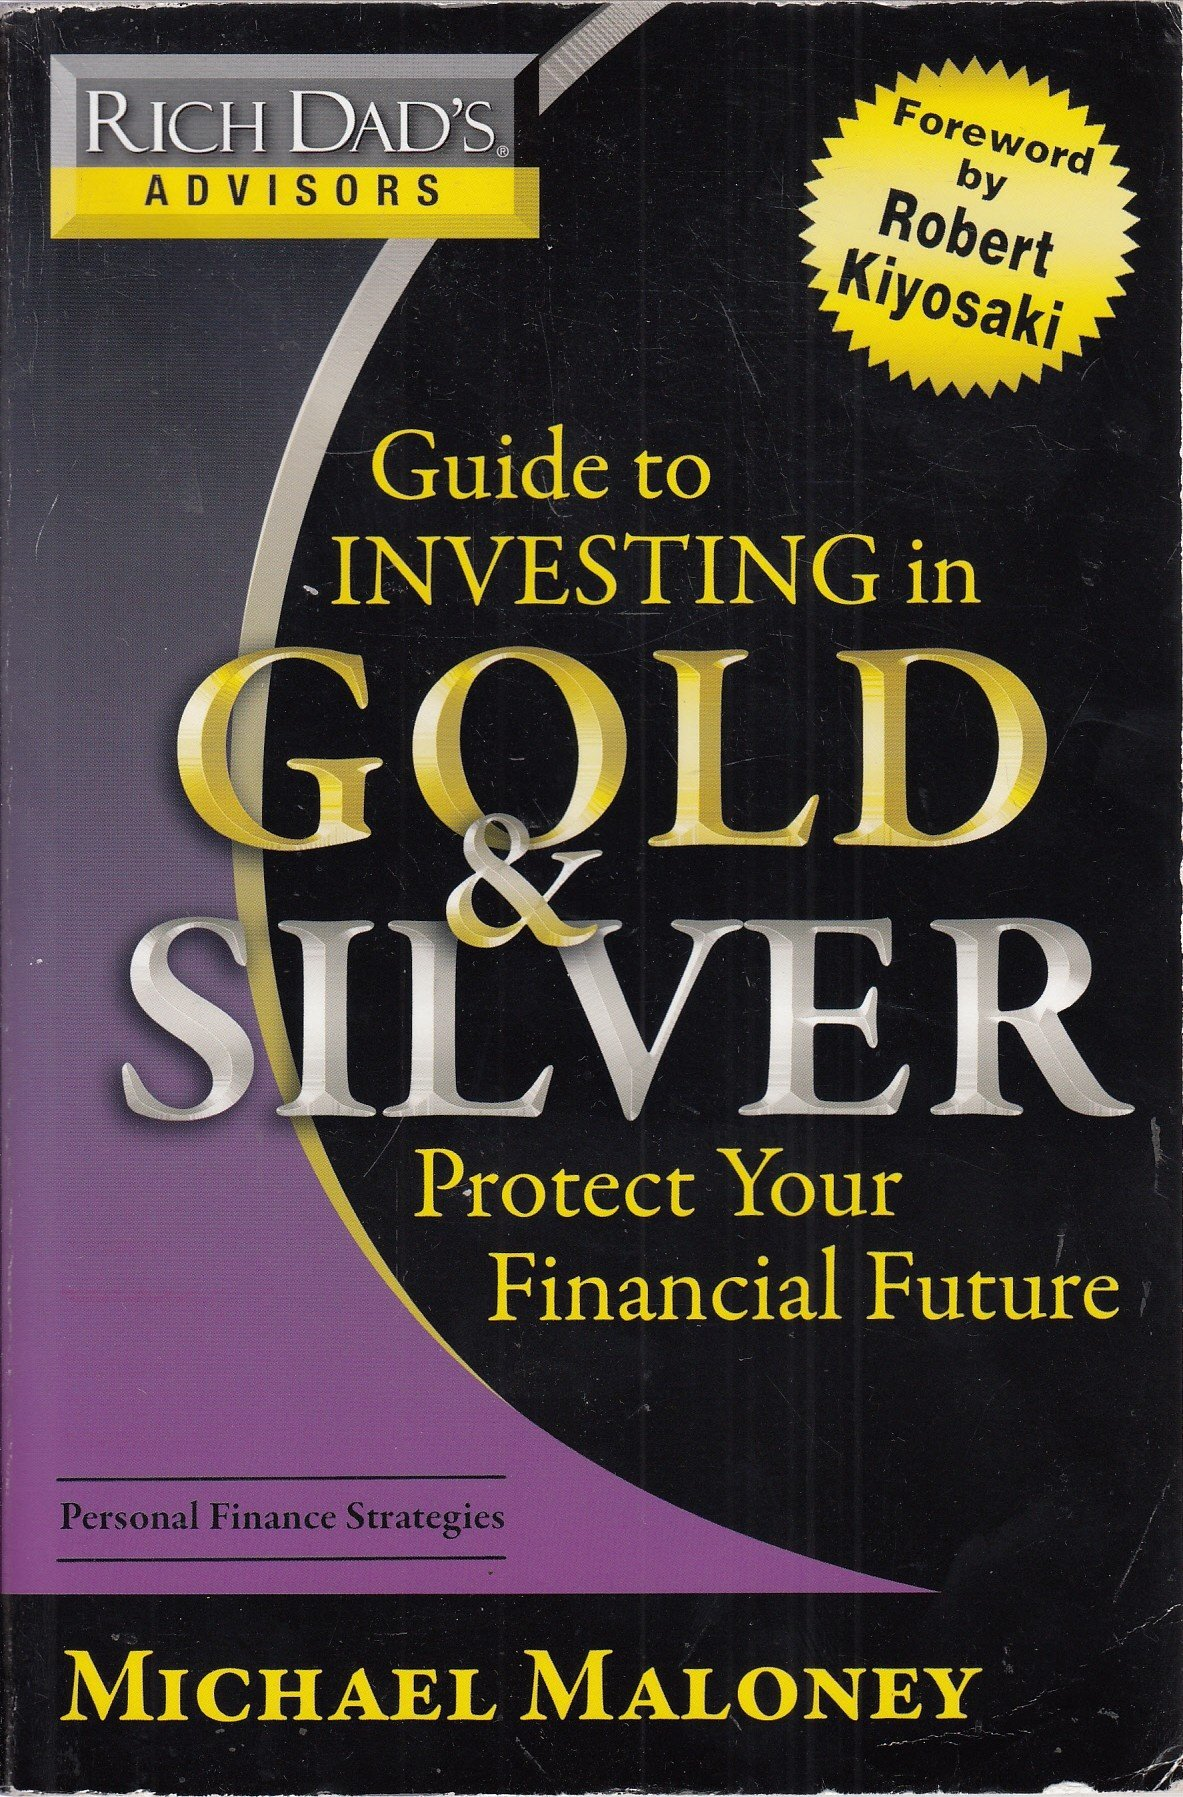 Rich Dad's Advisors: Guide to Investing In Gold and Silver: Protect Your  Financial Future: Michael Maloney: 9780446510998: Amazon.com: Books